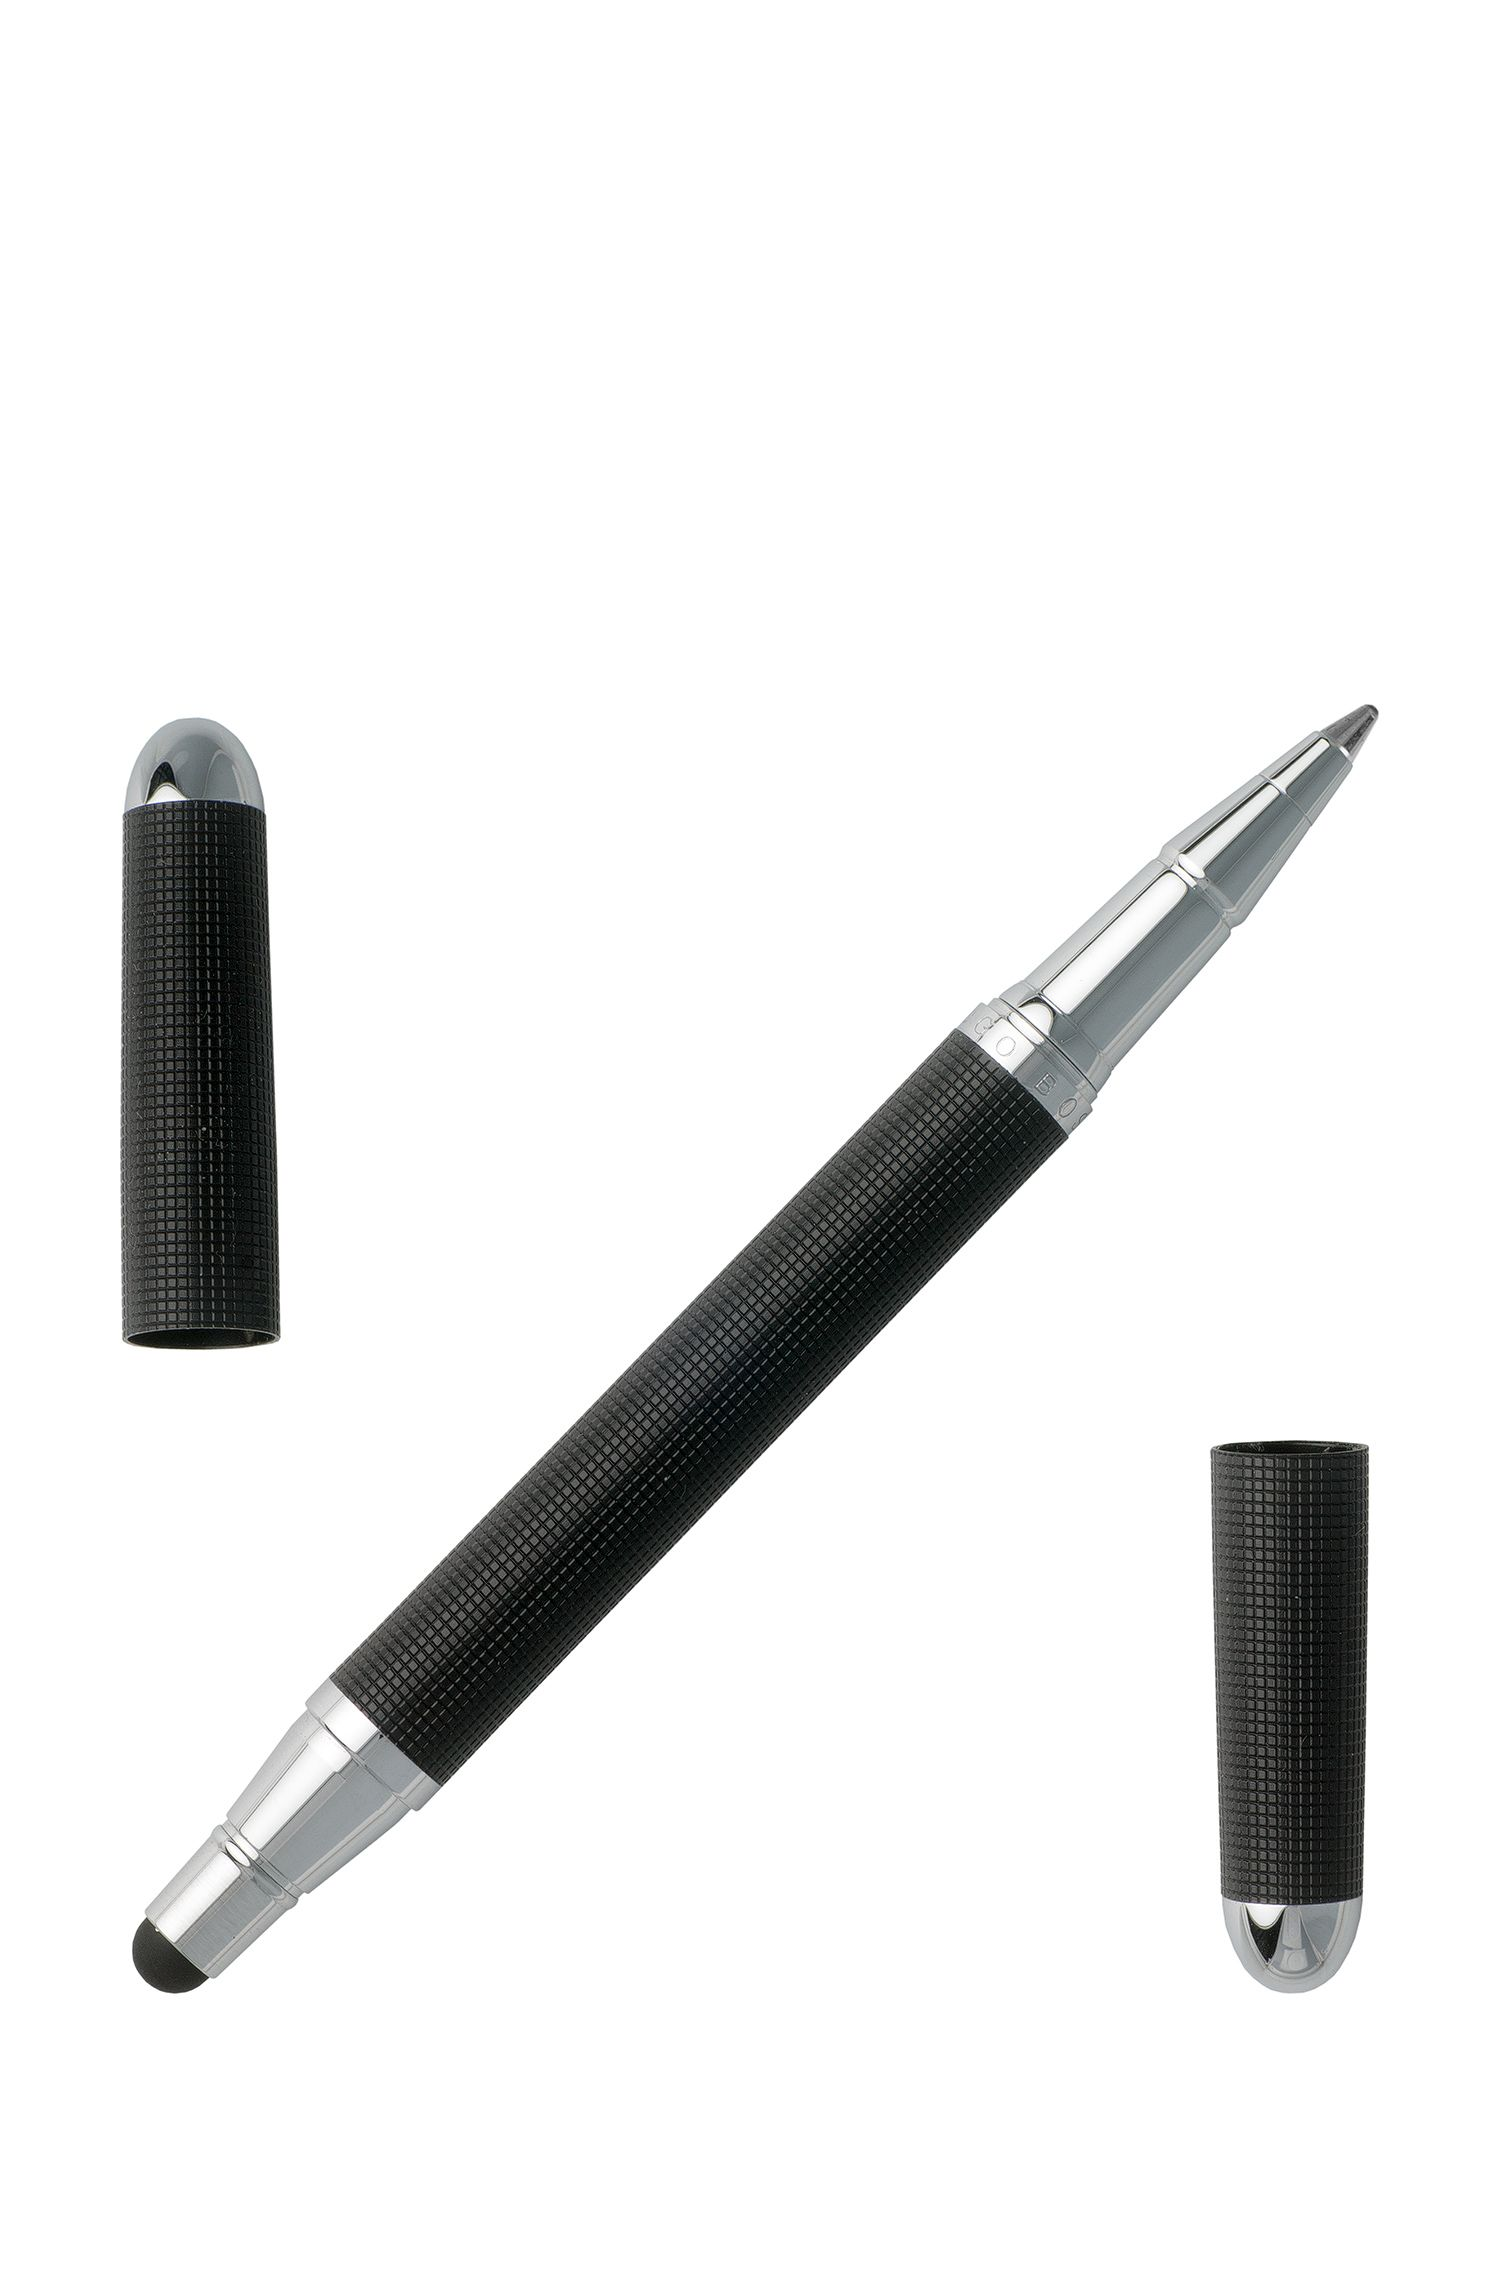 Clipless rollerball pen in black with stylus tip, Black